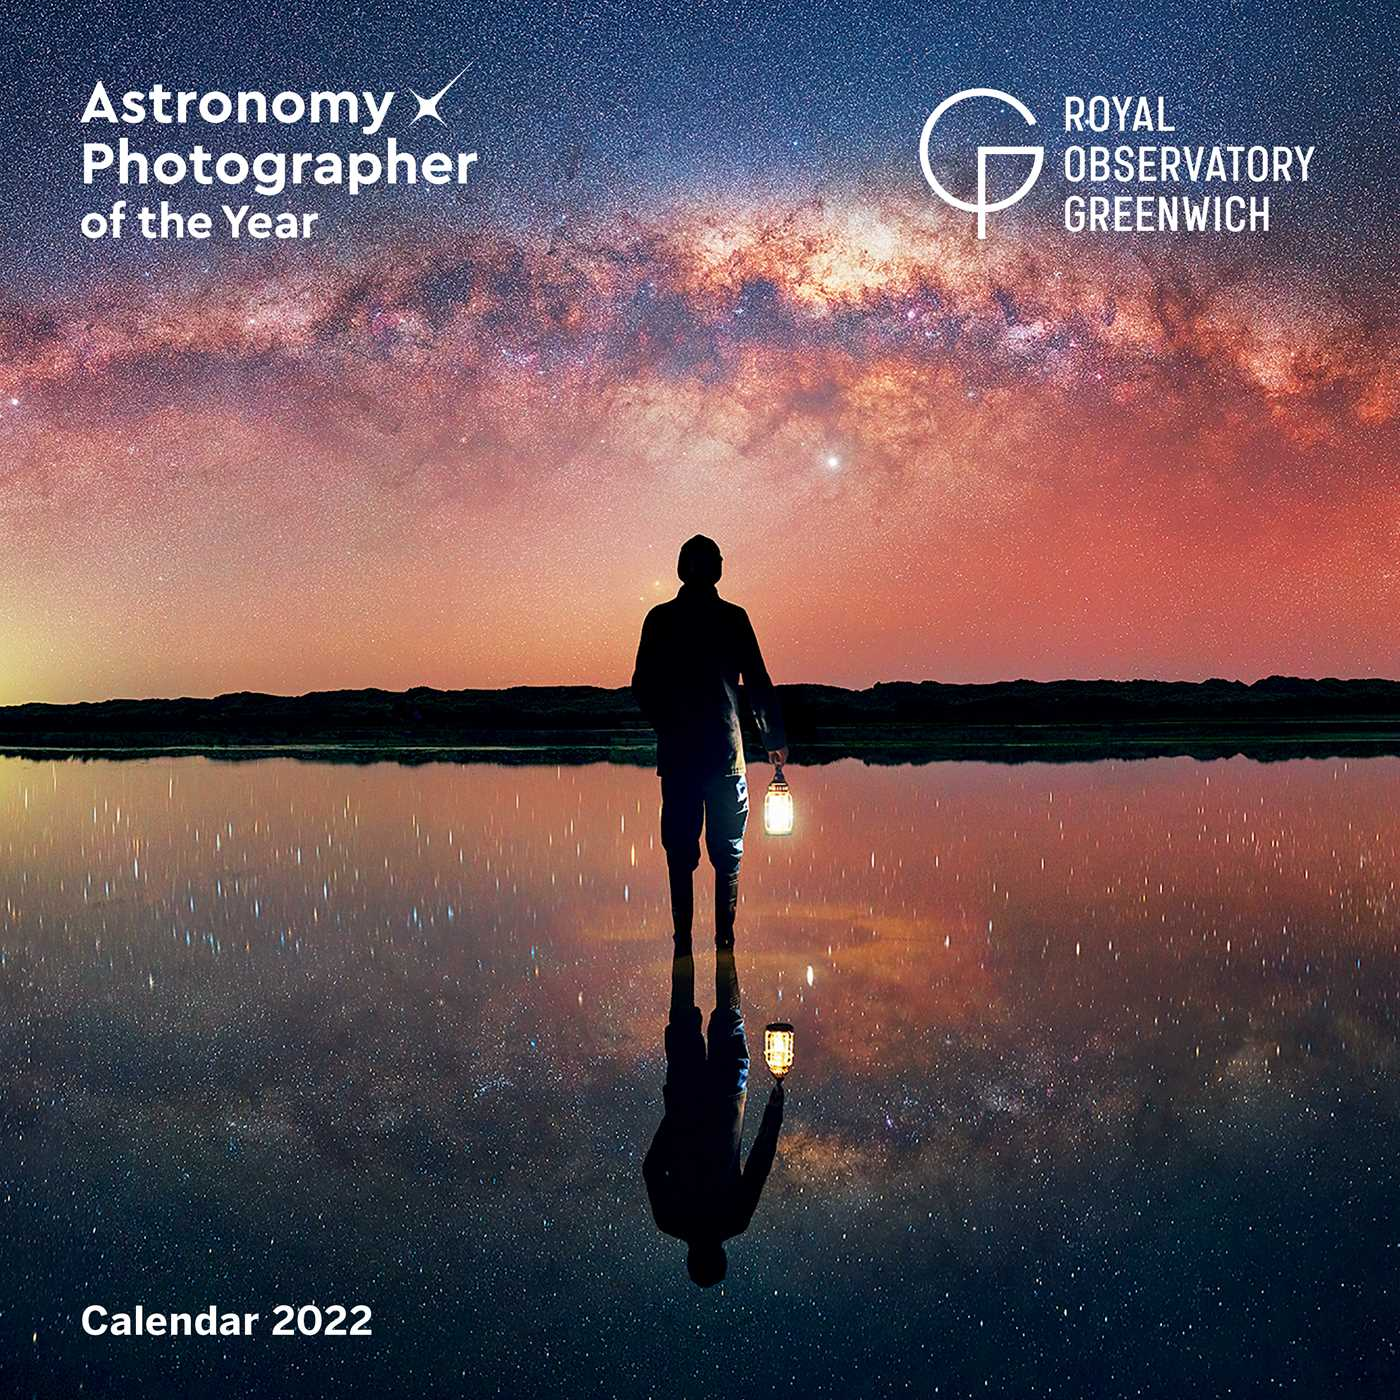 Astronomy Calendar 2022.Royal Observatory Greenwich Astronomy Photographer Of The Year Wall Calendar 2022 Art Calendar Book Summary Video Official Publisher Page Simon Schuster